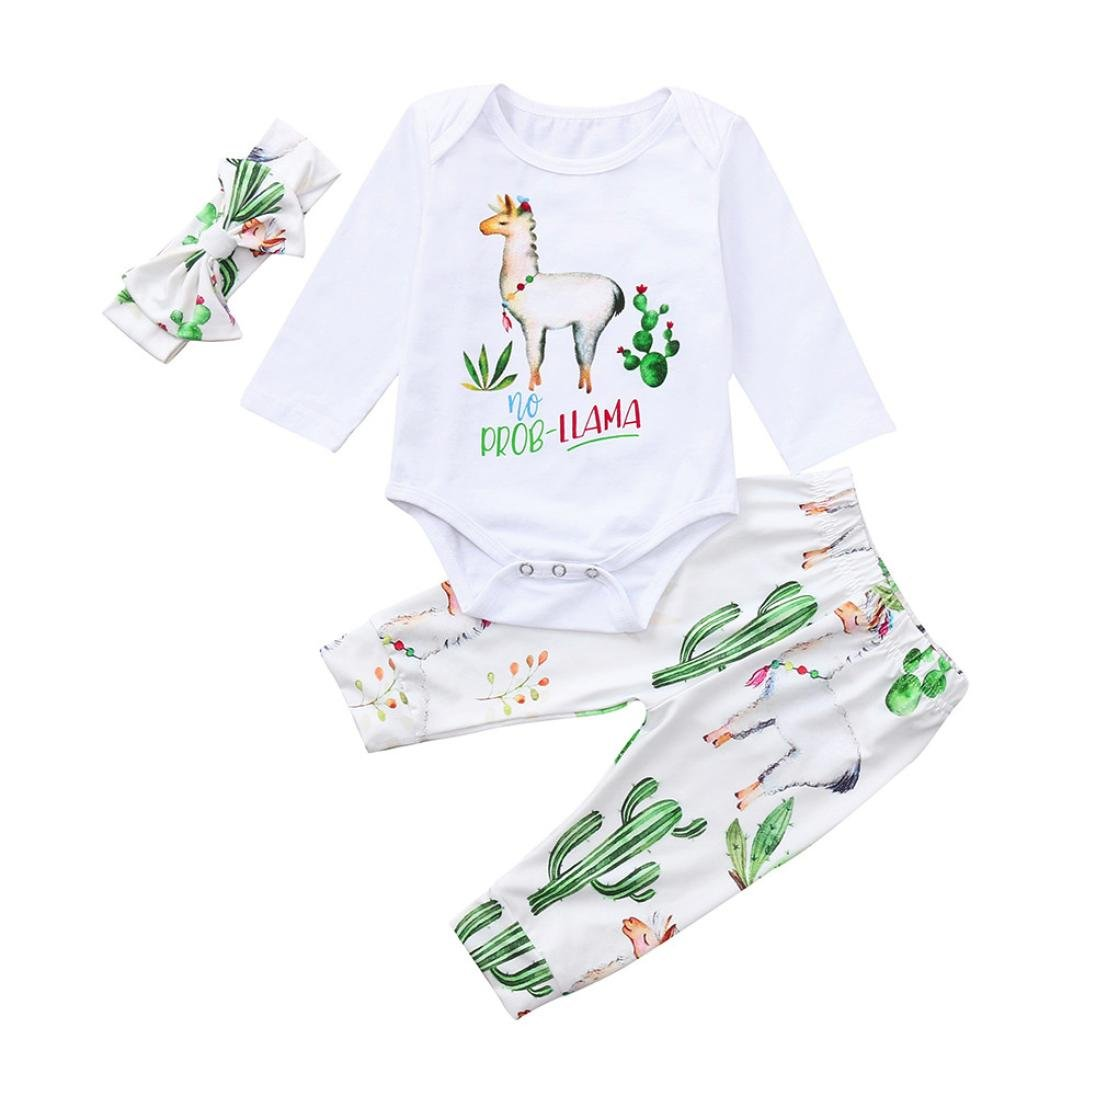 Newborn Letter Romper Sets, Jchen(TM) Newborn Baby Girls Long Sleeve Boys Letter Cartoon Alpaca Tops+Pant + Headaband Fall Outfits for 0-24 Months (Age: 18-24 Months)